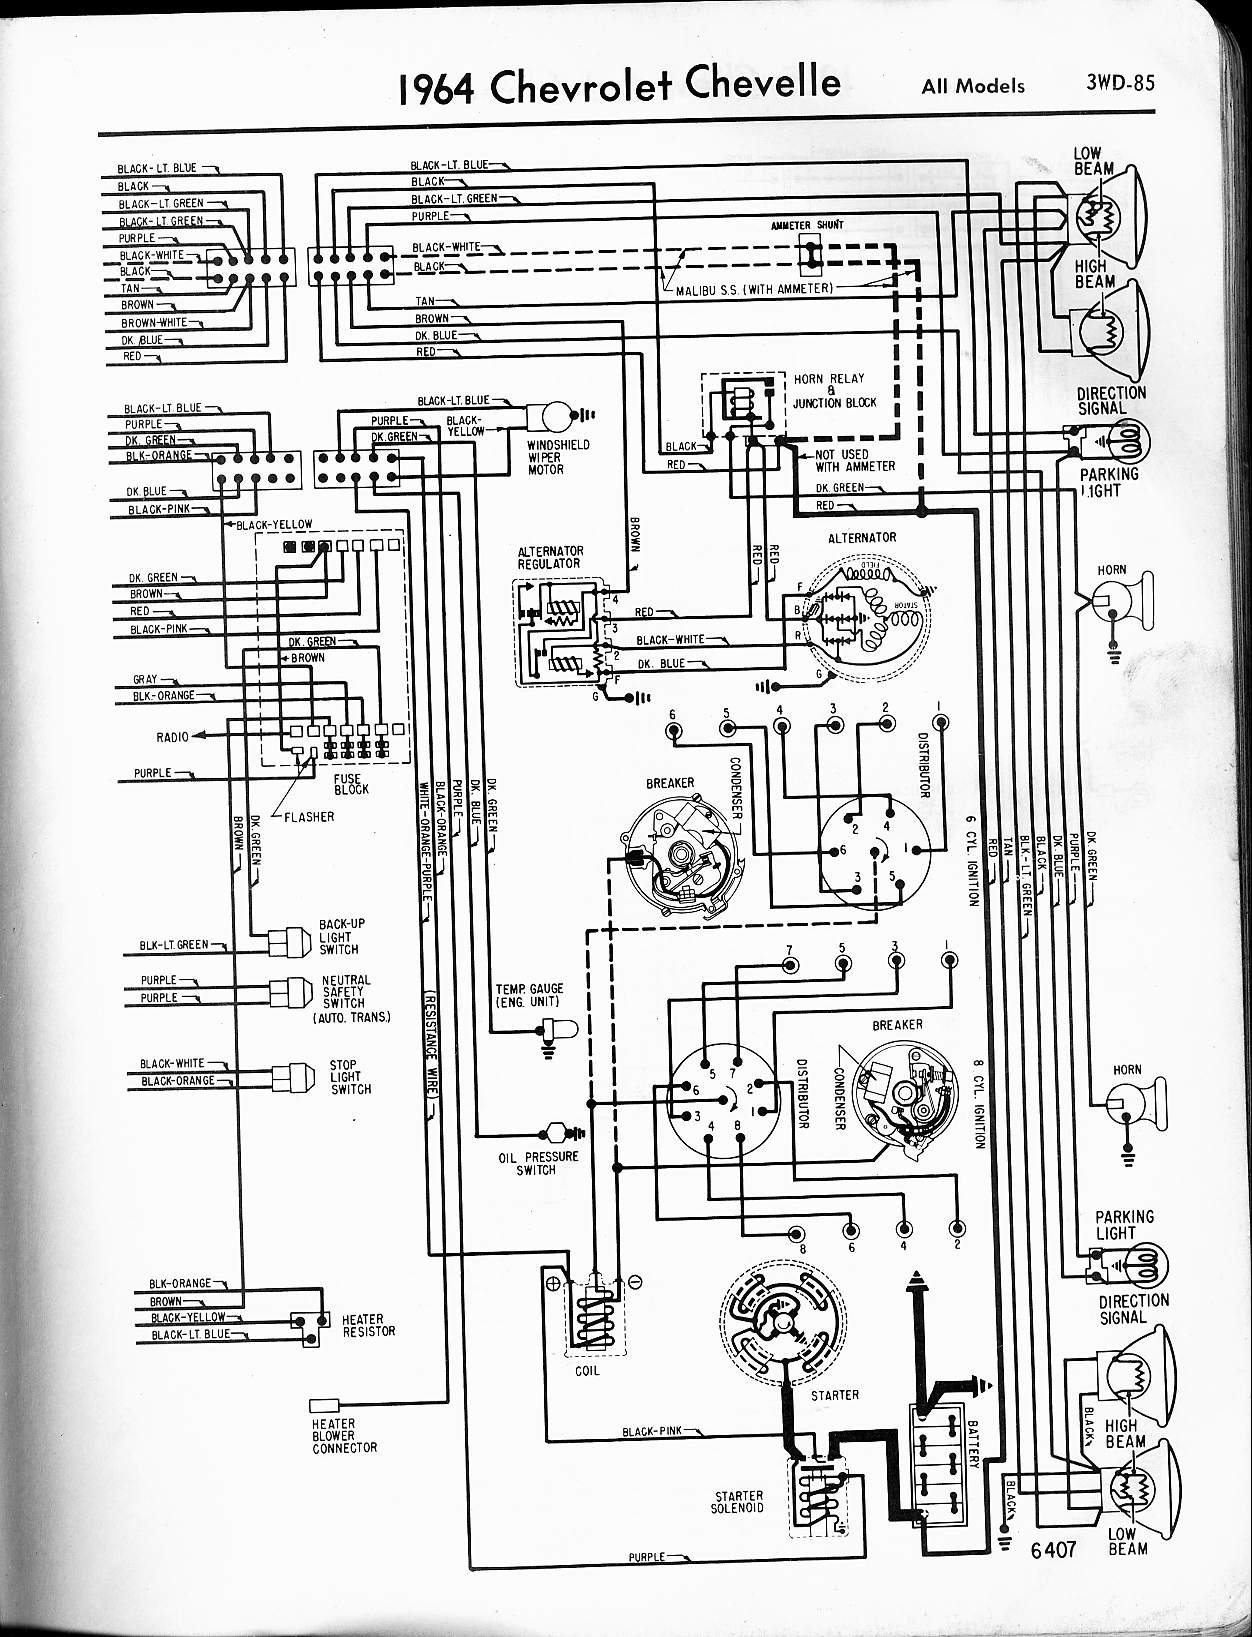 MWireChev64_3WD 085 chevy diagrams 1966 chevelle wiring diagram at suagrazia.org